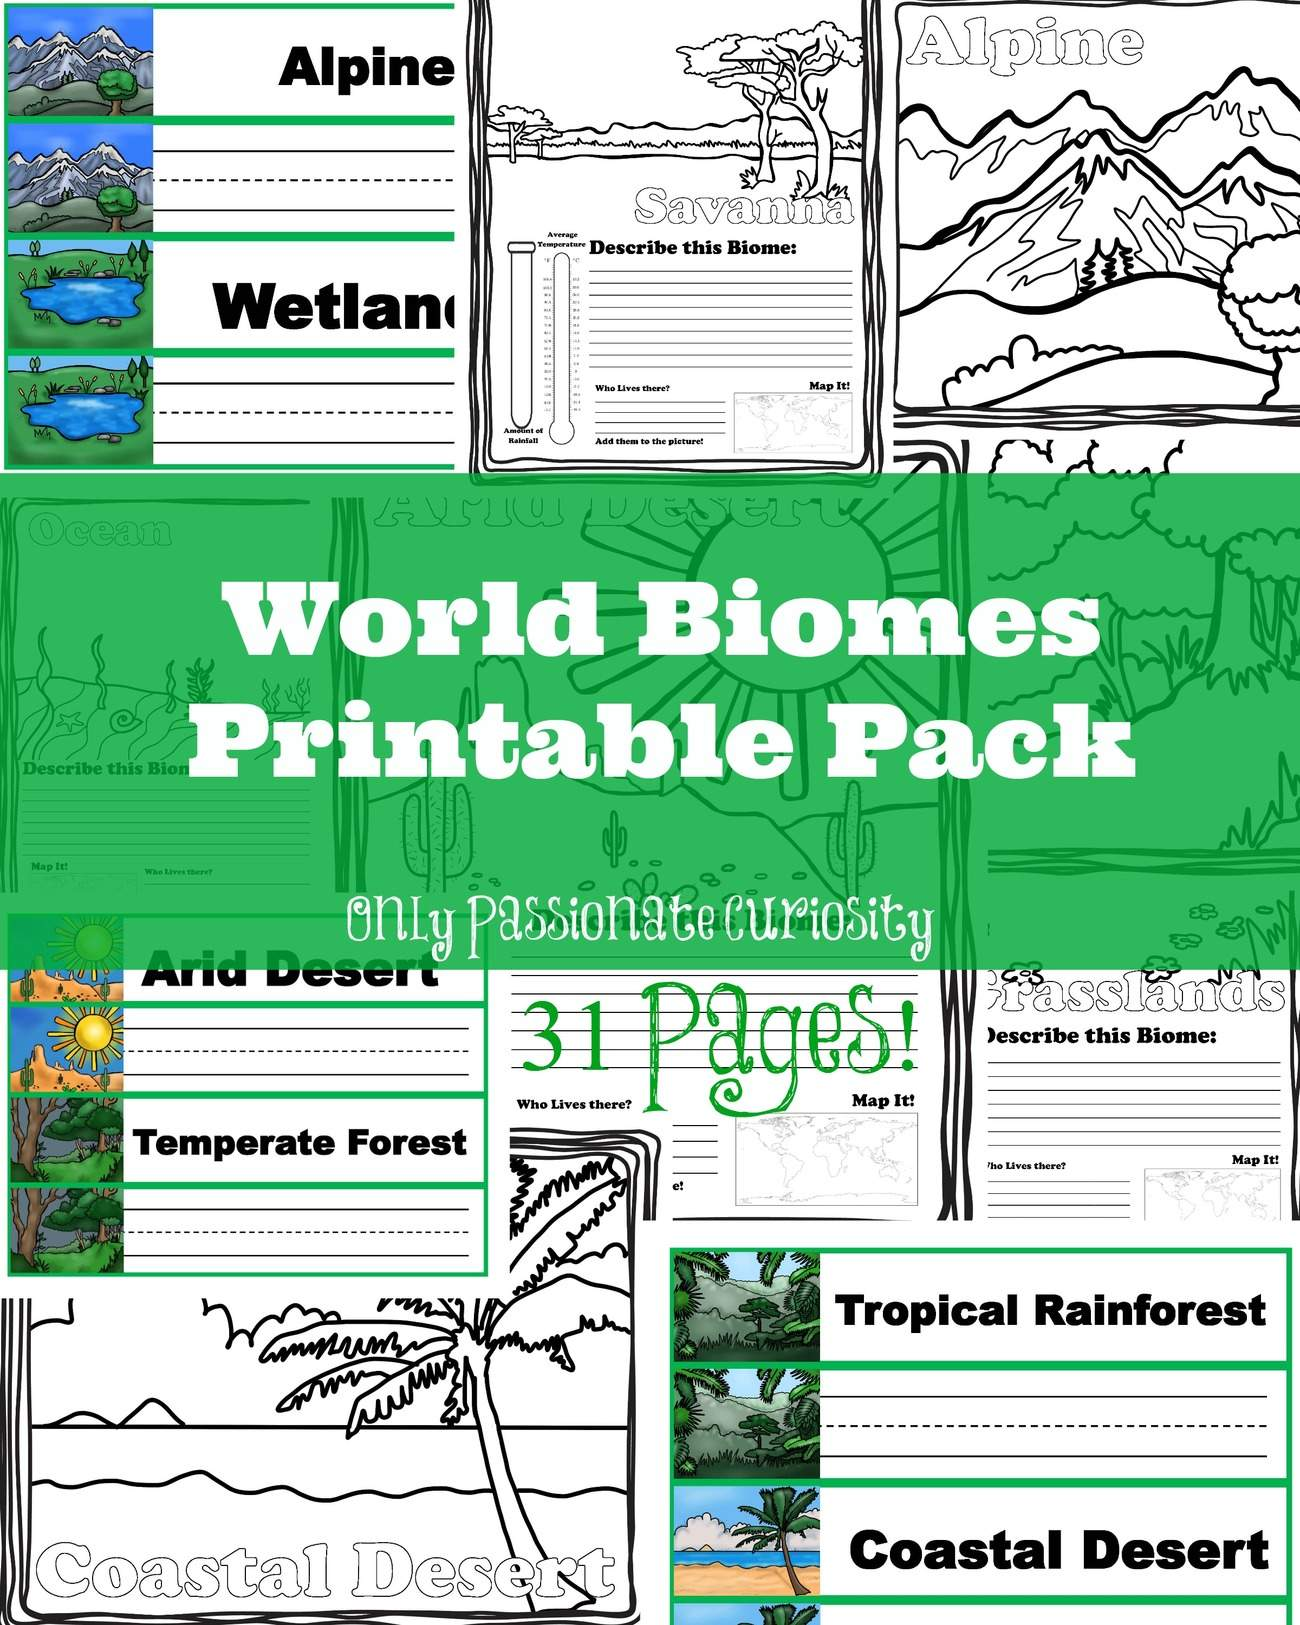 Learning About World Biomes u2013 Only Passionate Curiosity